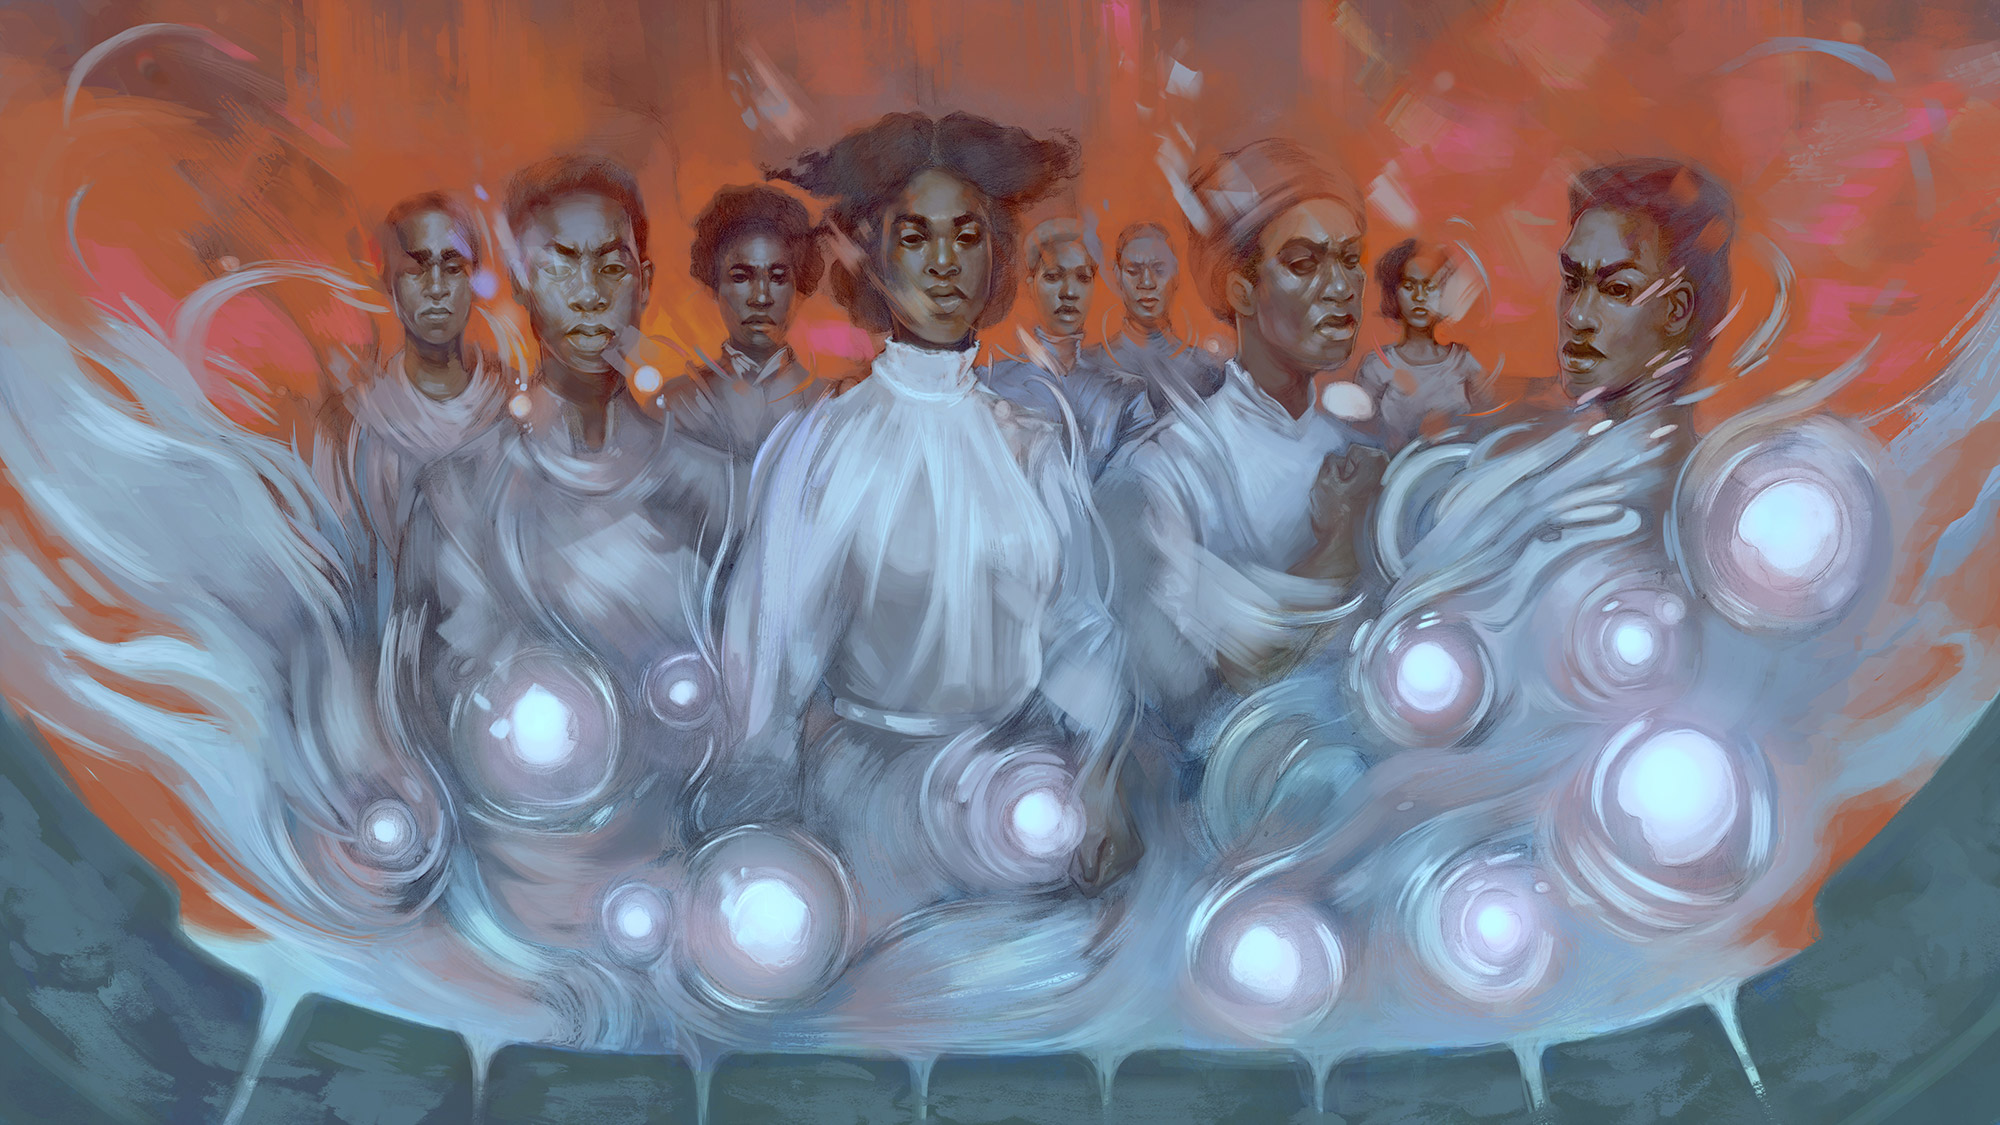 Nine ethereal Black people stand in defiance, surrounded by creepy dentures and luminous orbs.